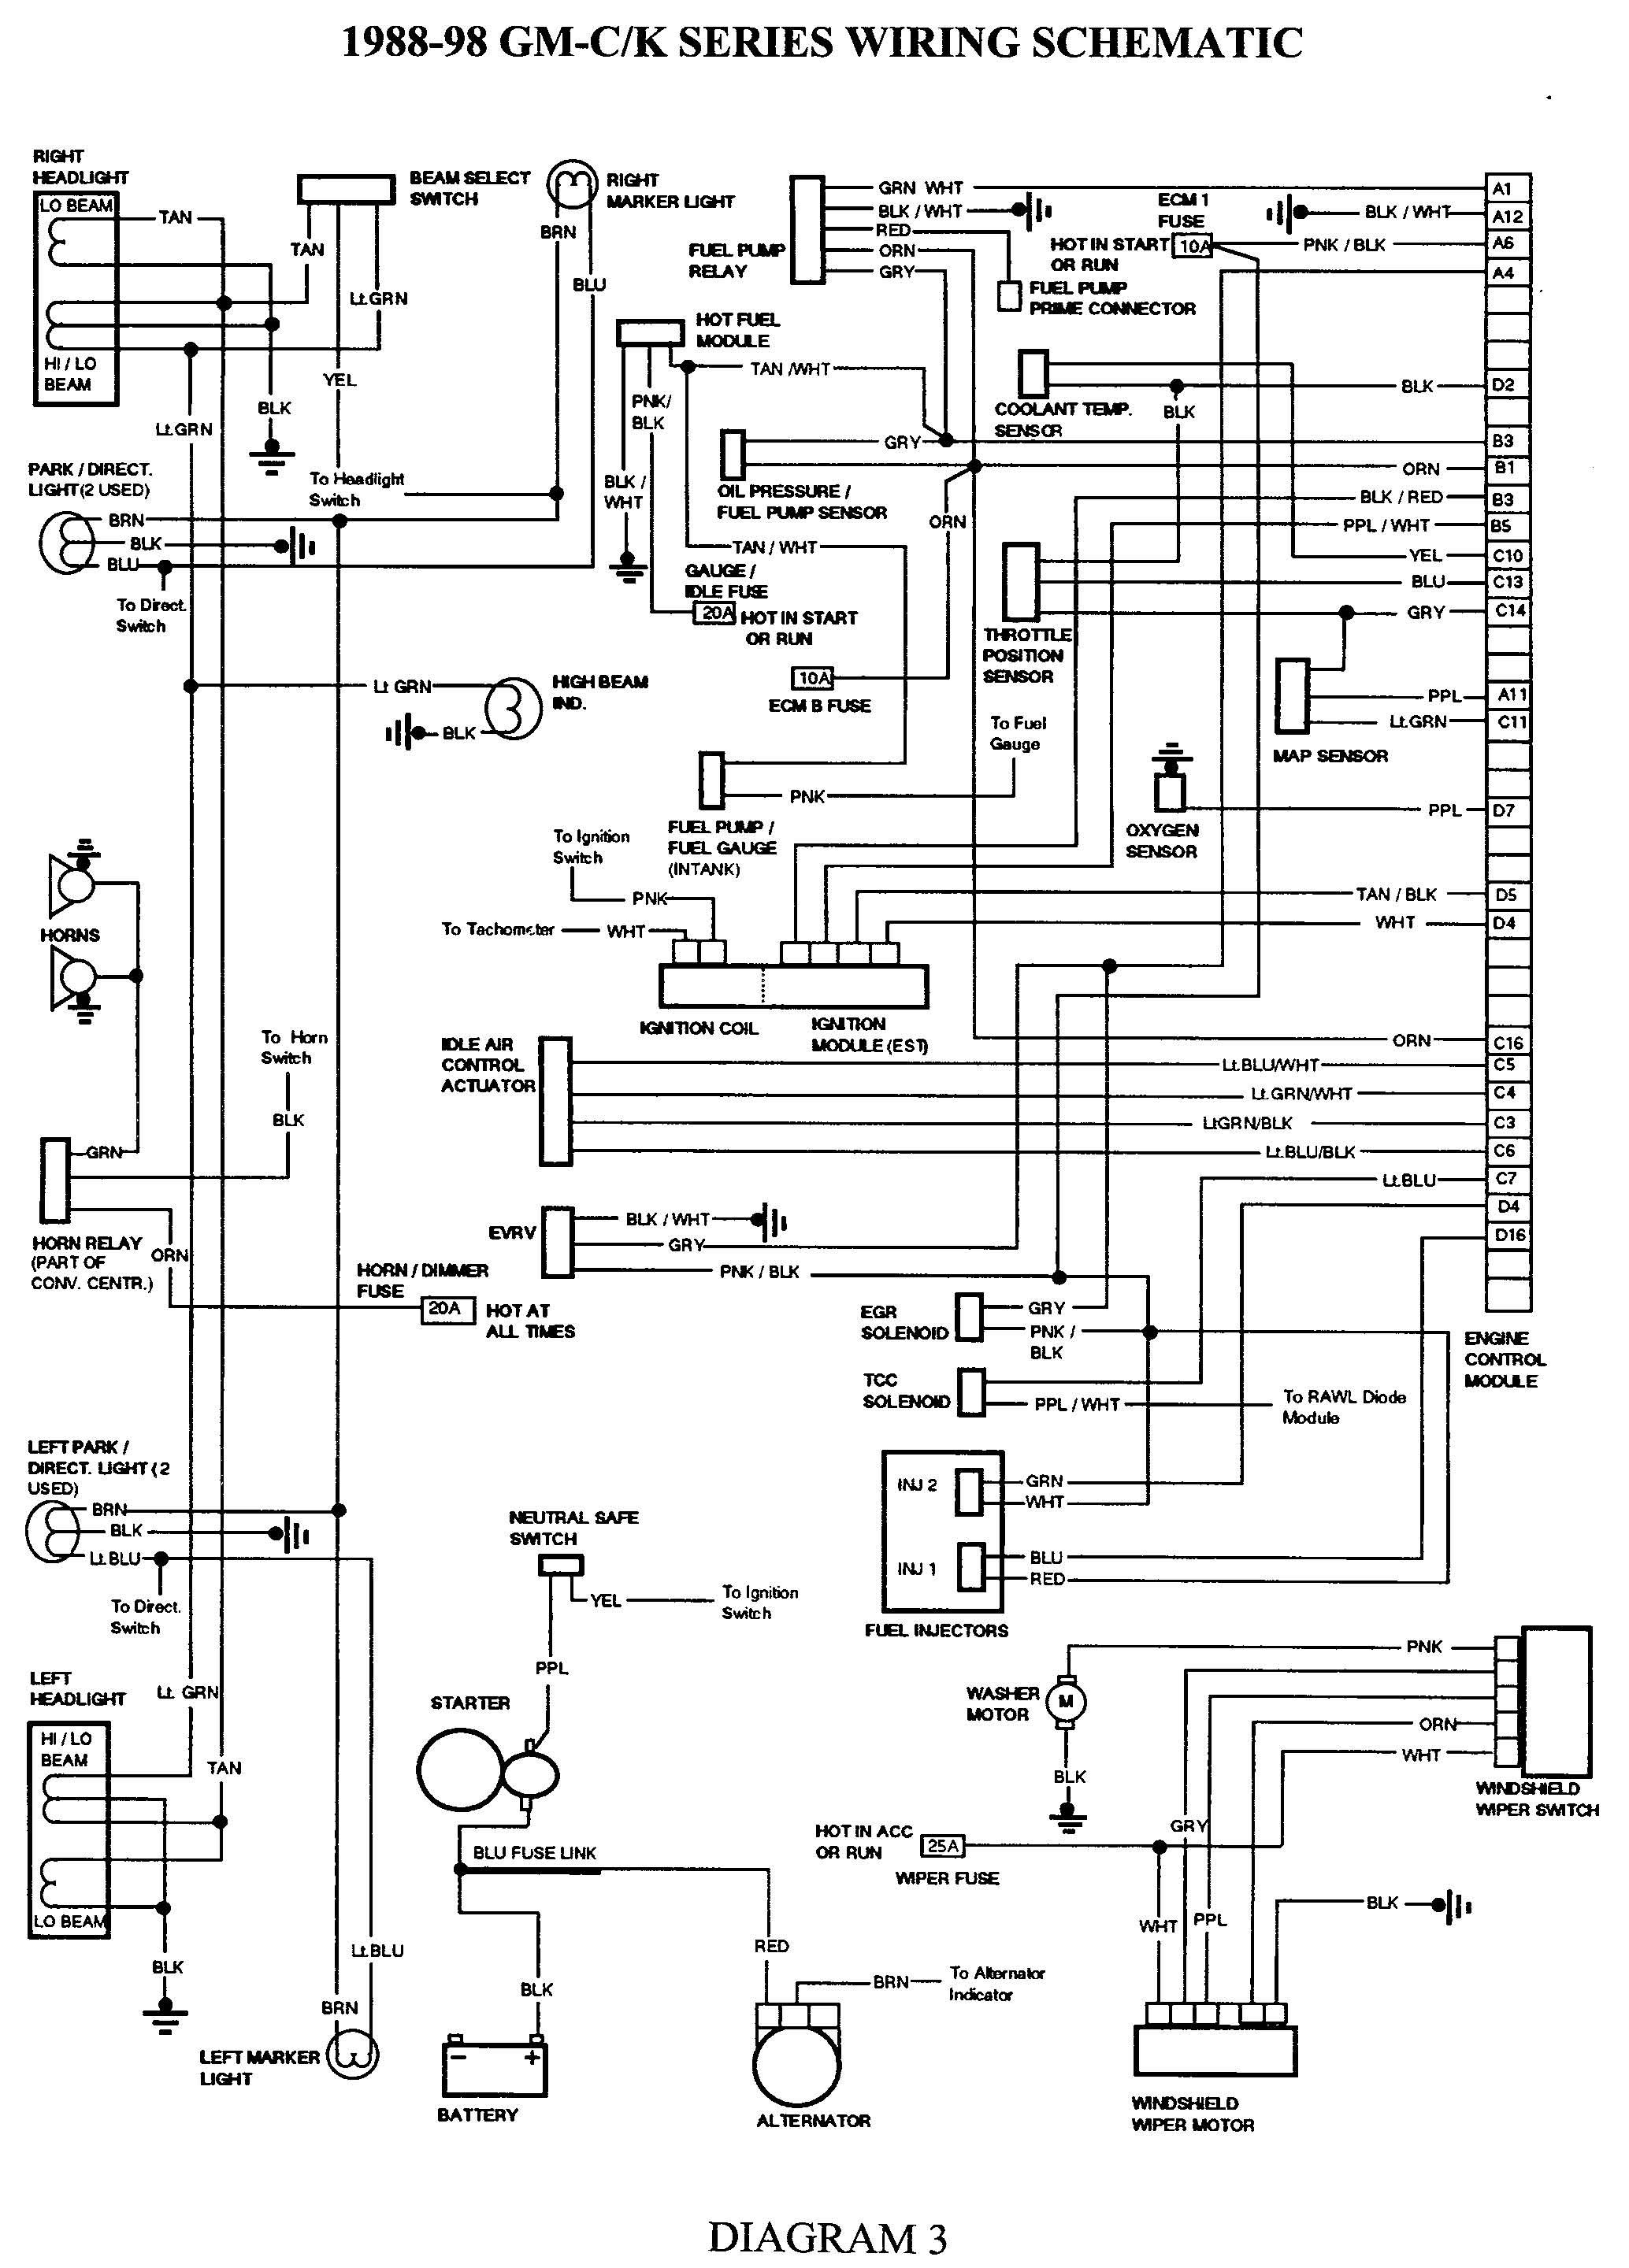 gmc truck wiring diagrams on gm wiring harness diagram 88 98 kc chevrolet colorado trailer wiring harness chevrolet wiring harness [ 2068 x 2880 Pixel ]